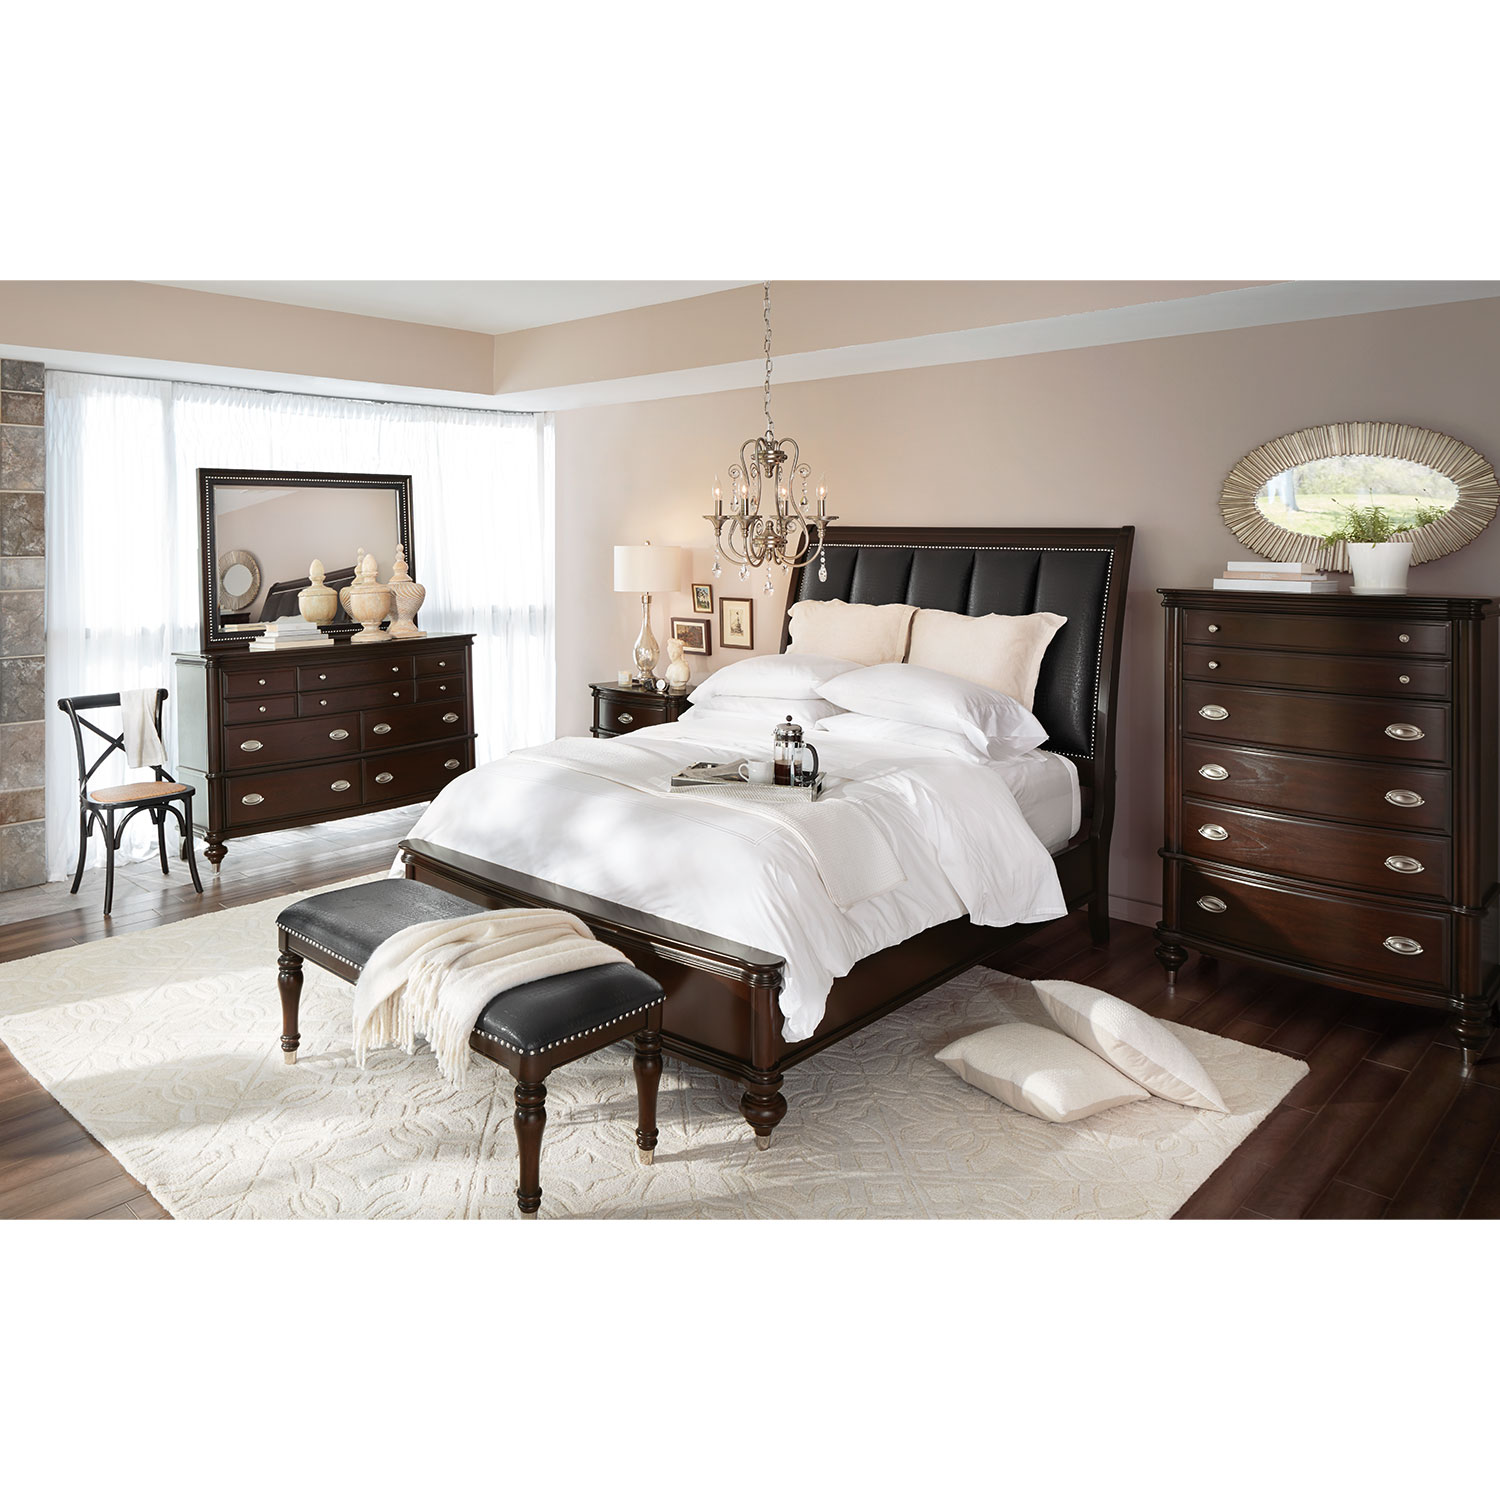 Esquire 5-Piece King Bedroom Set - Merlot | Value City Furniture and ...